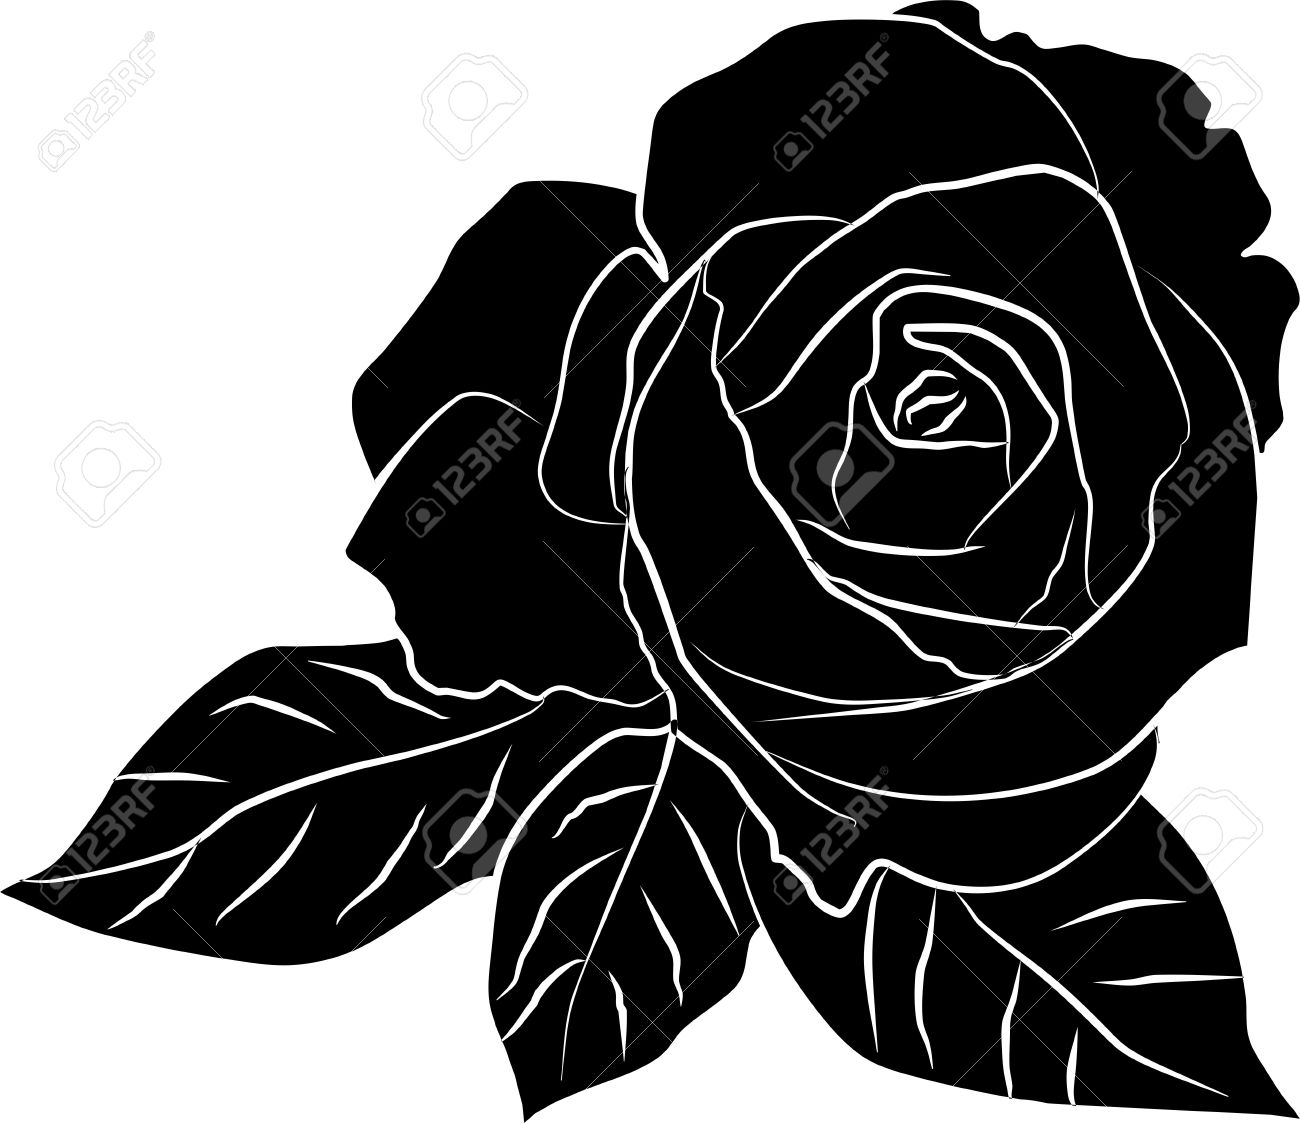 cadb891a3 black rose silhouette - freehand, vector illustration Stock Vector -  12917572